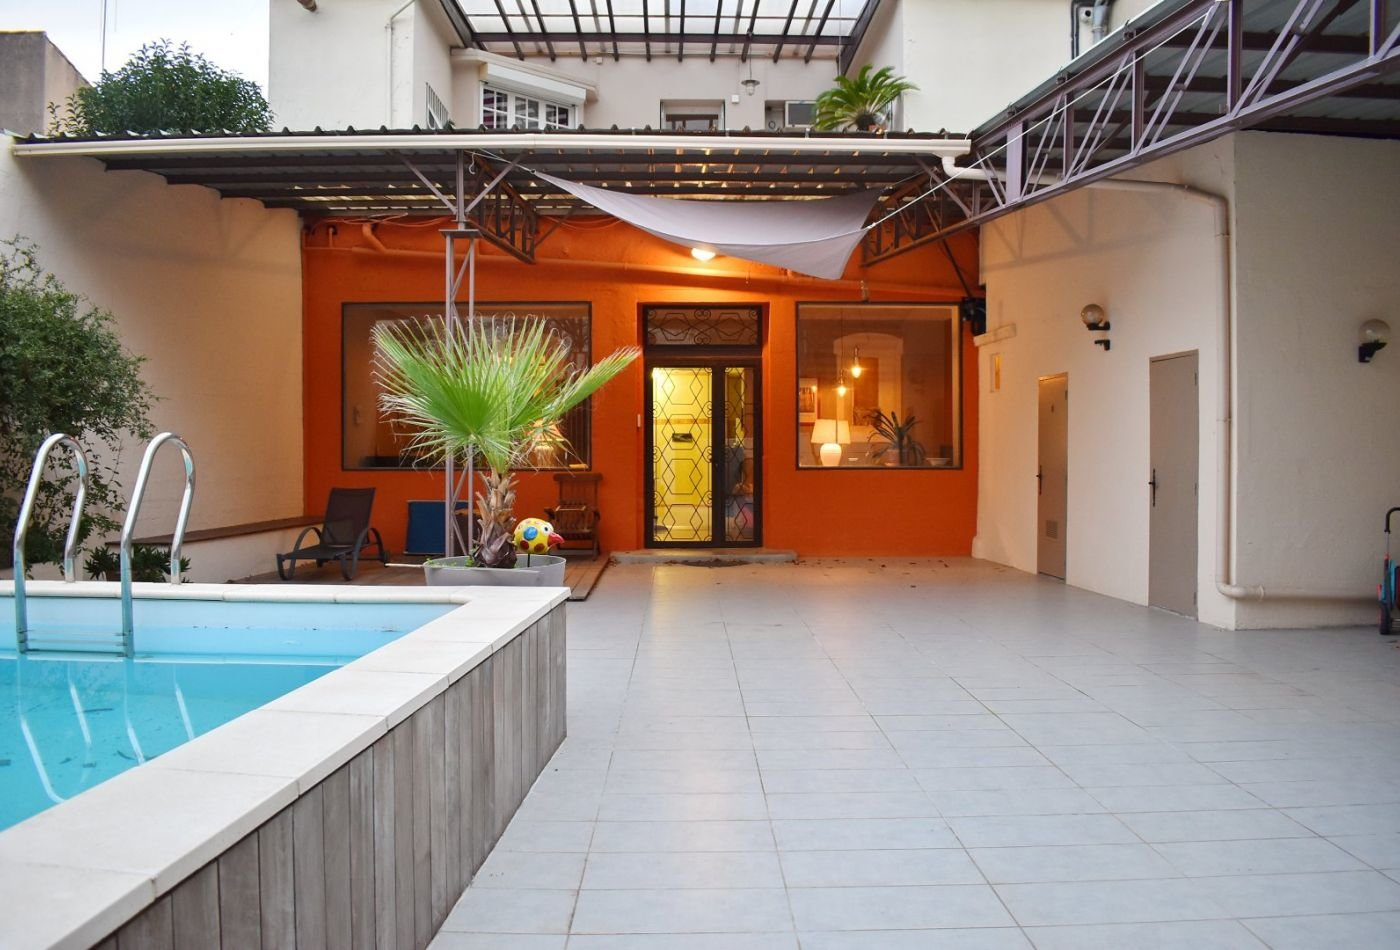 Townhouse with pool in Béziers